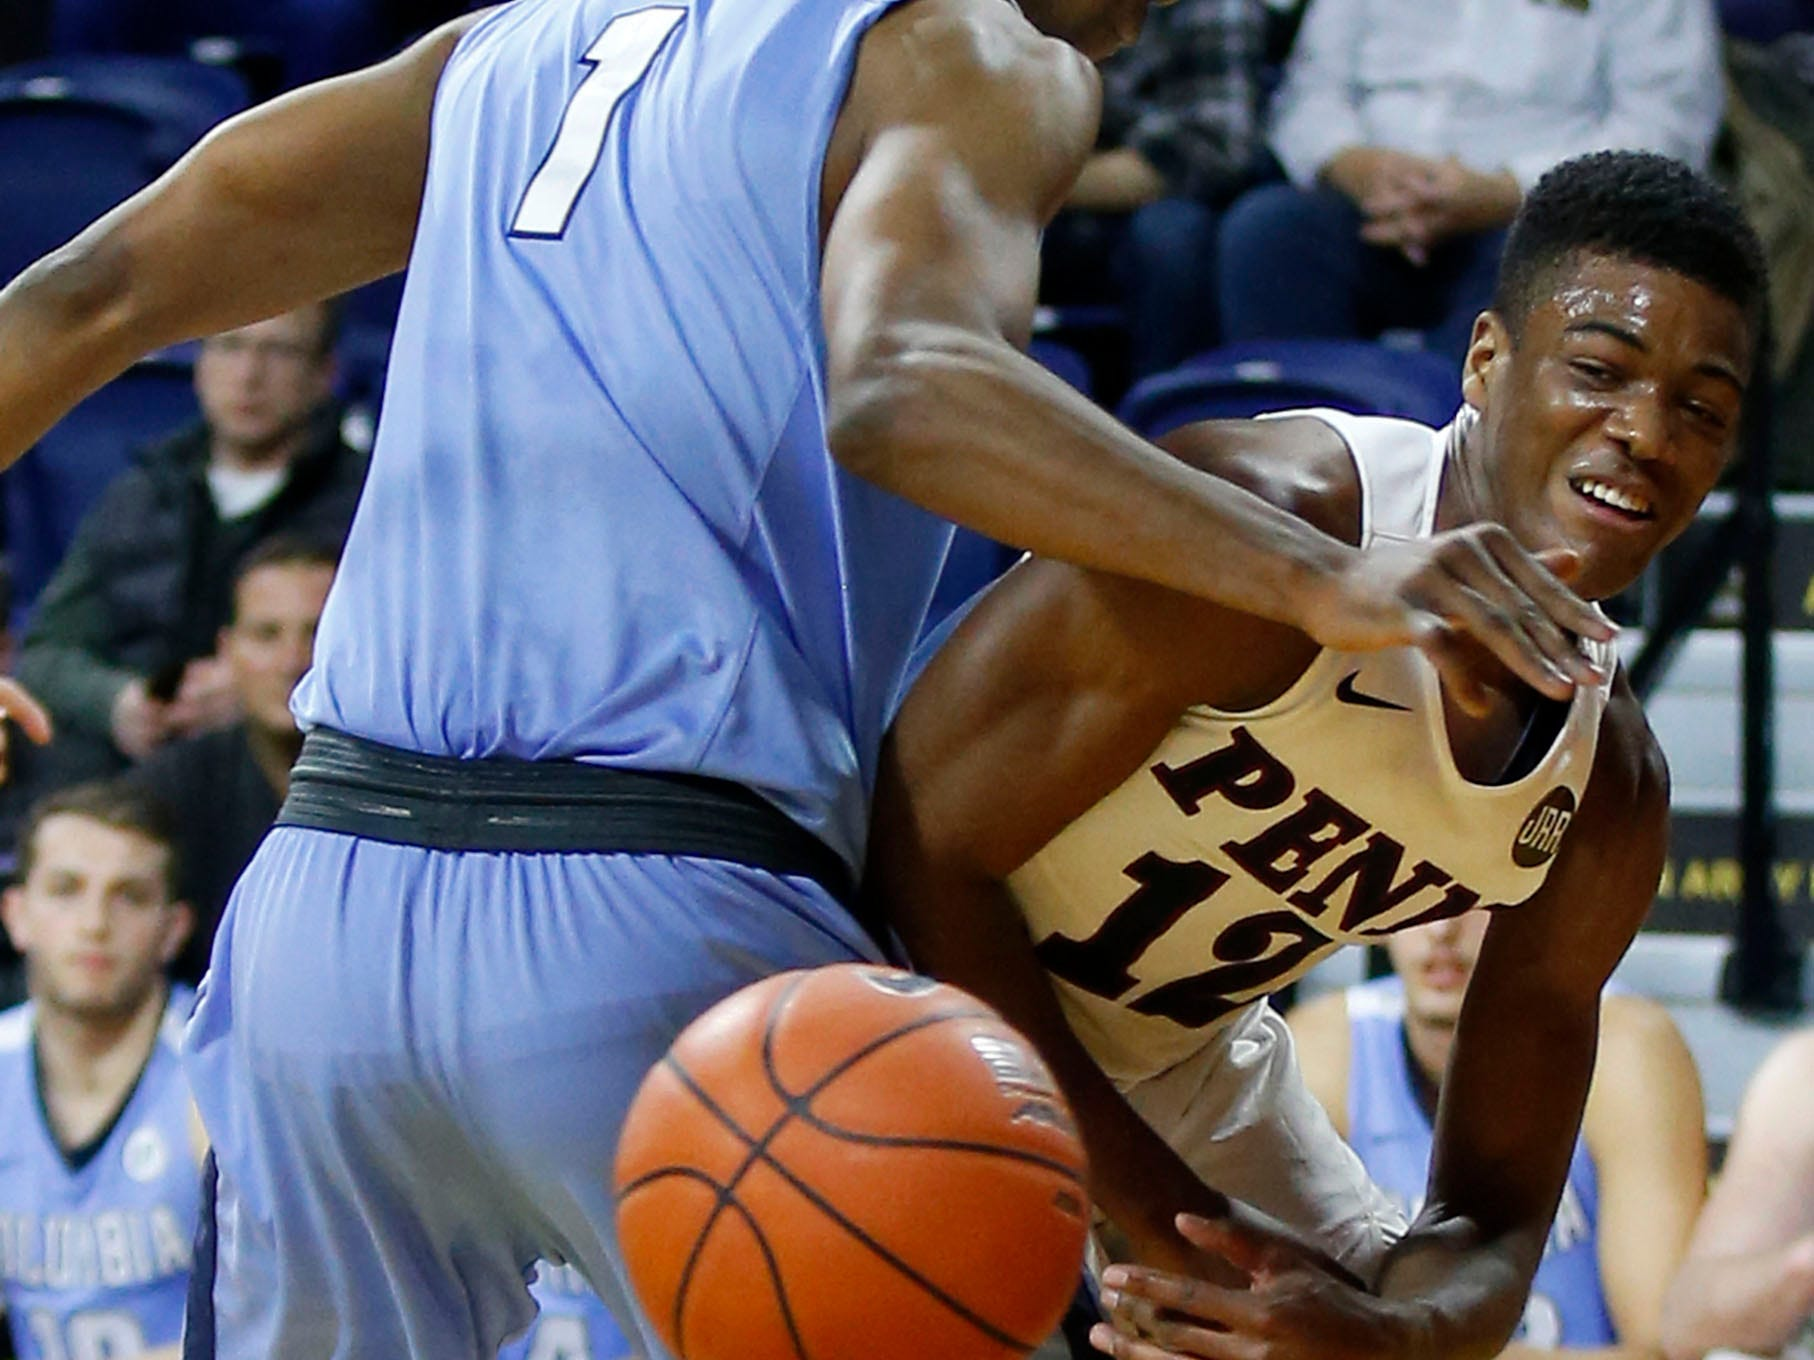 Penn beats Columbia for first league victory | USA TODAY ...